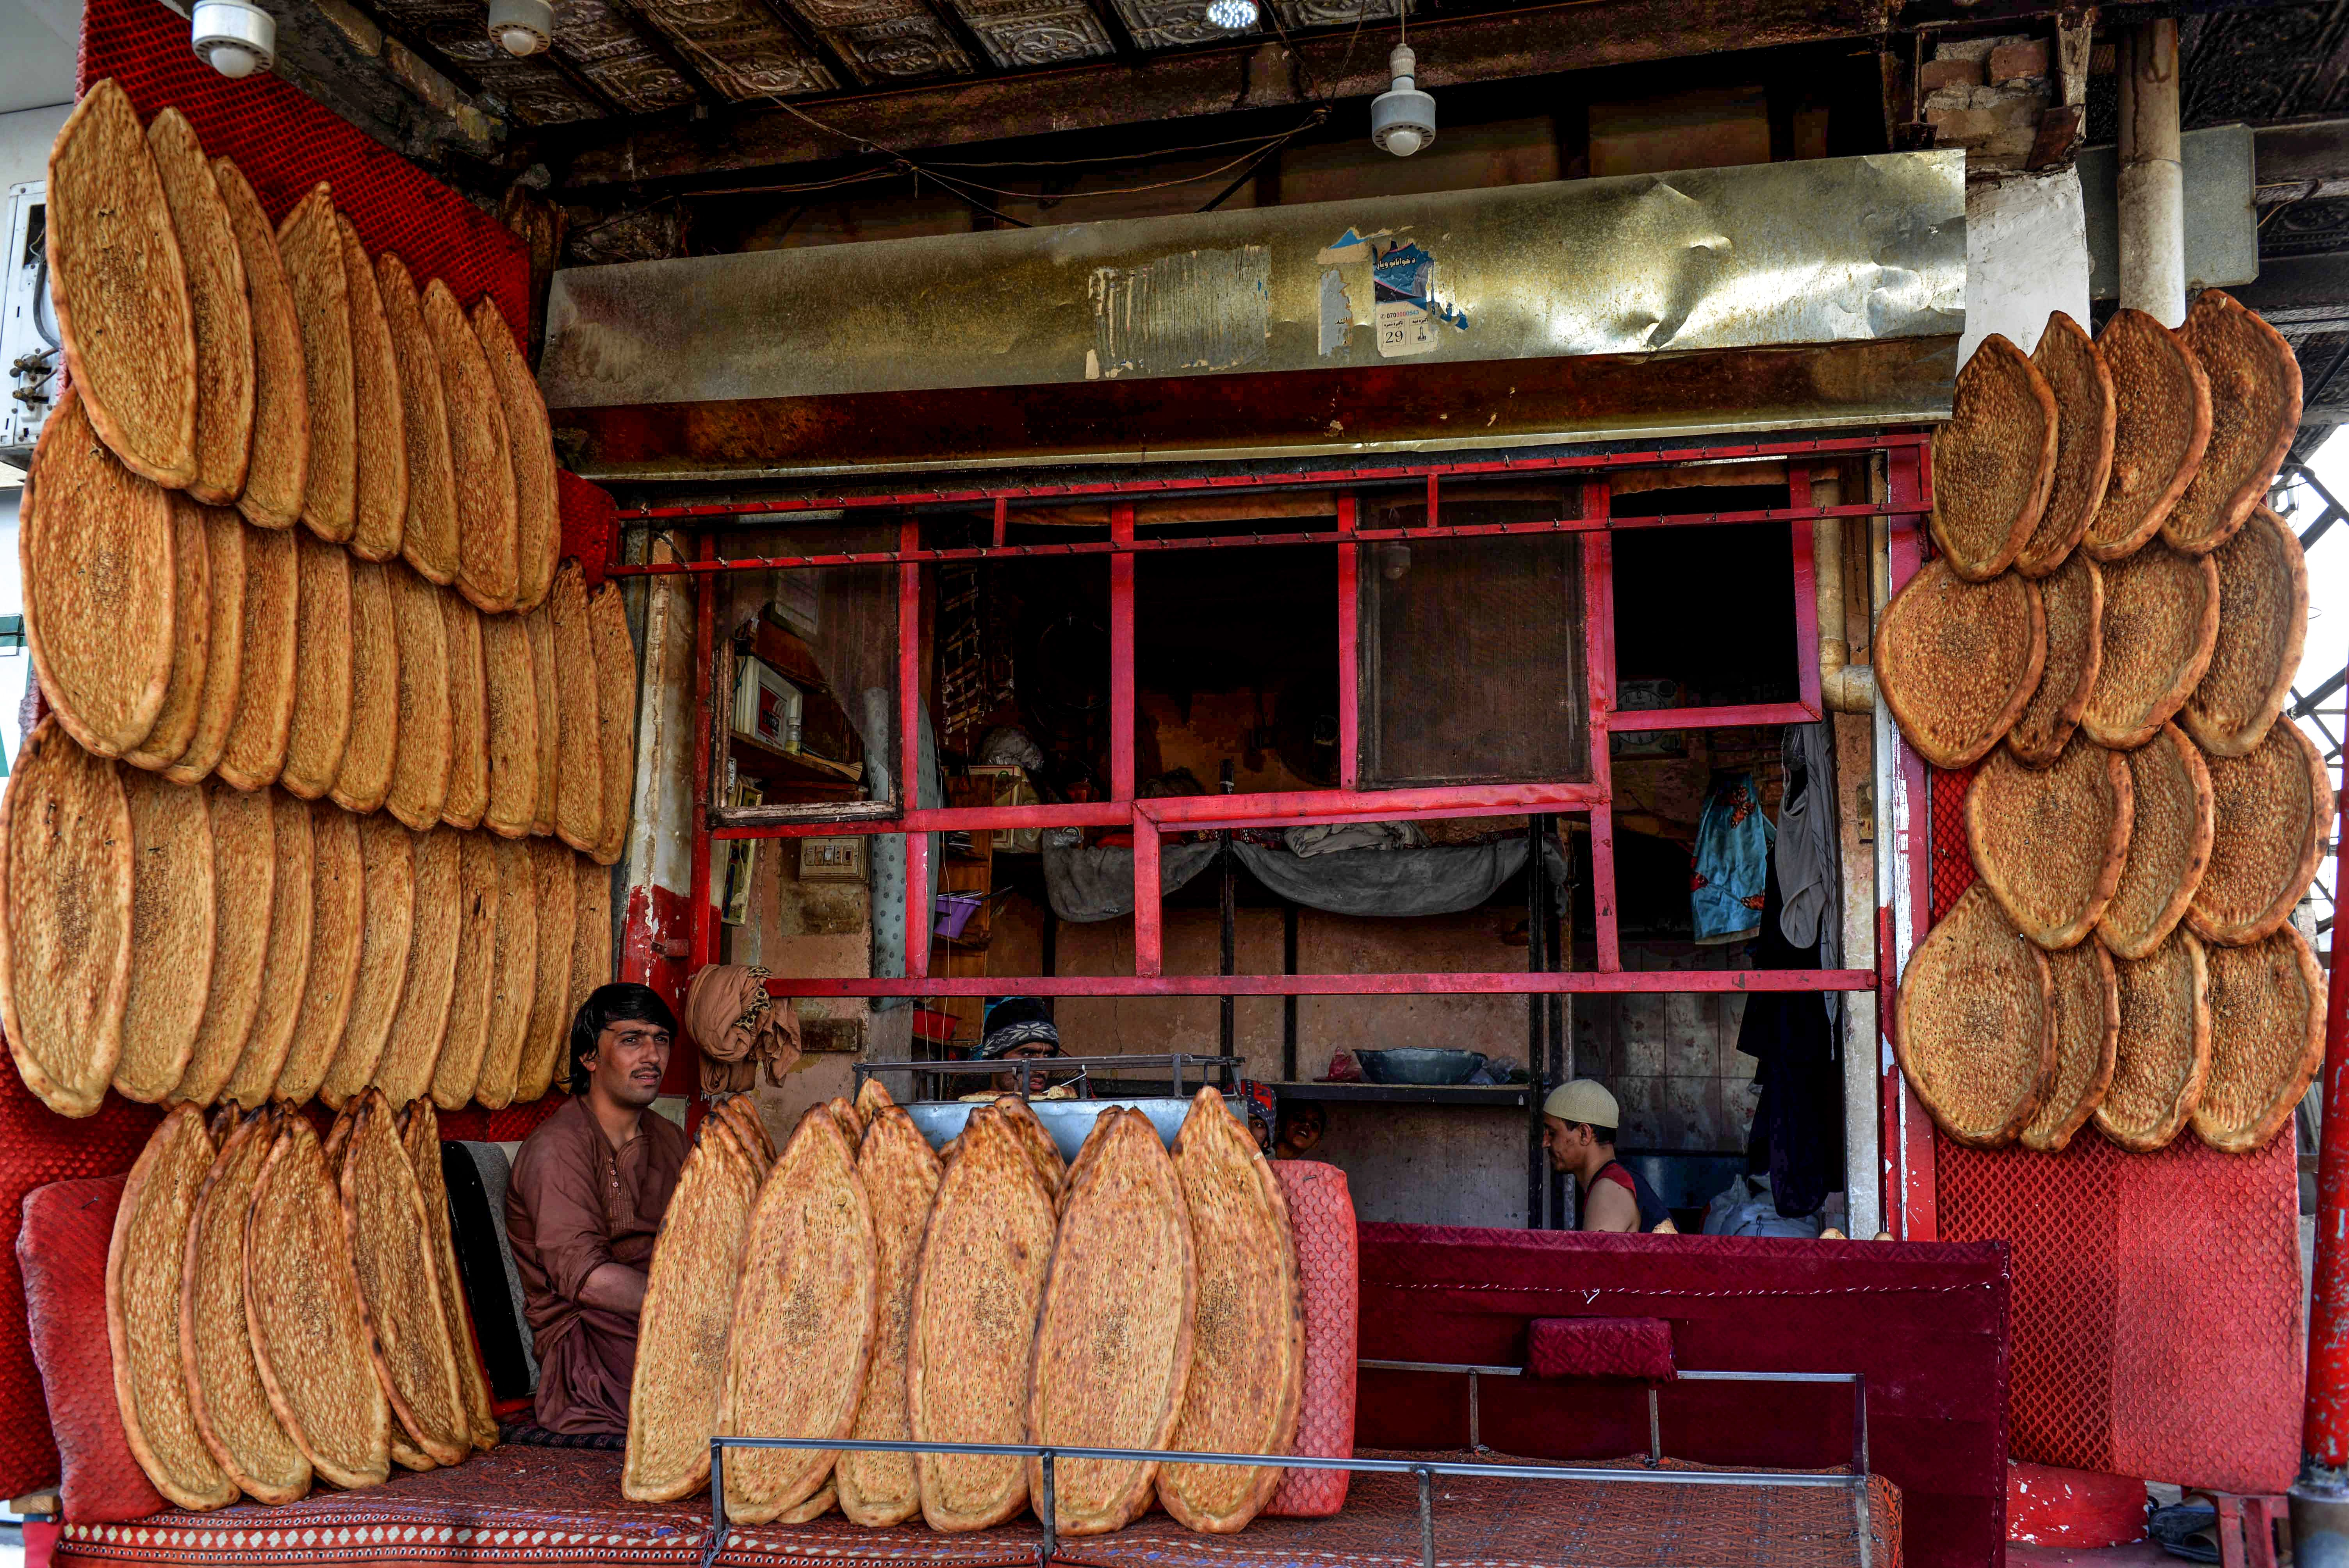 In this photo taken on May 2, 2020, a baker sits inside his bakery among breads as he waits for customers during the Muslim holy month of Ramadan in Kandahar city. (Photo by JAVED TANVEER/AFP via Getty Images)